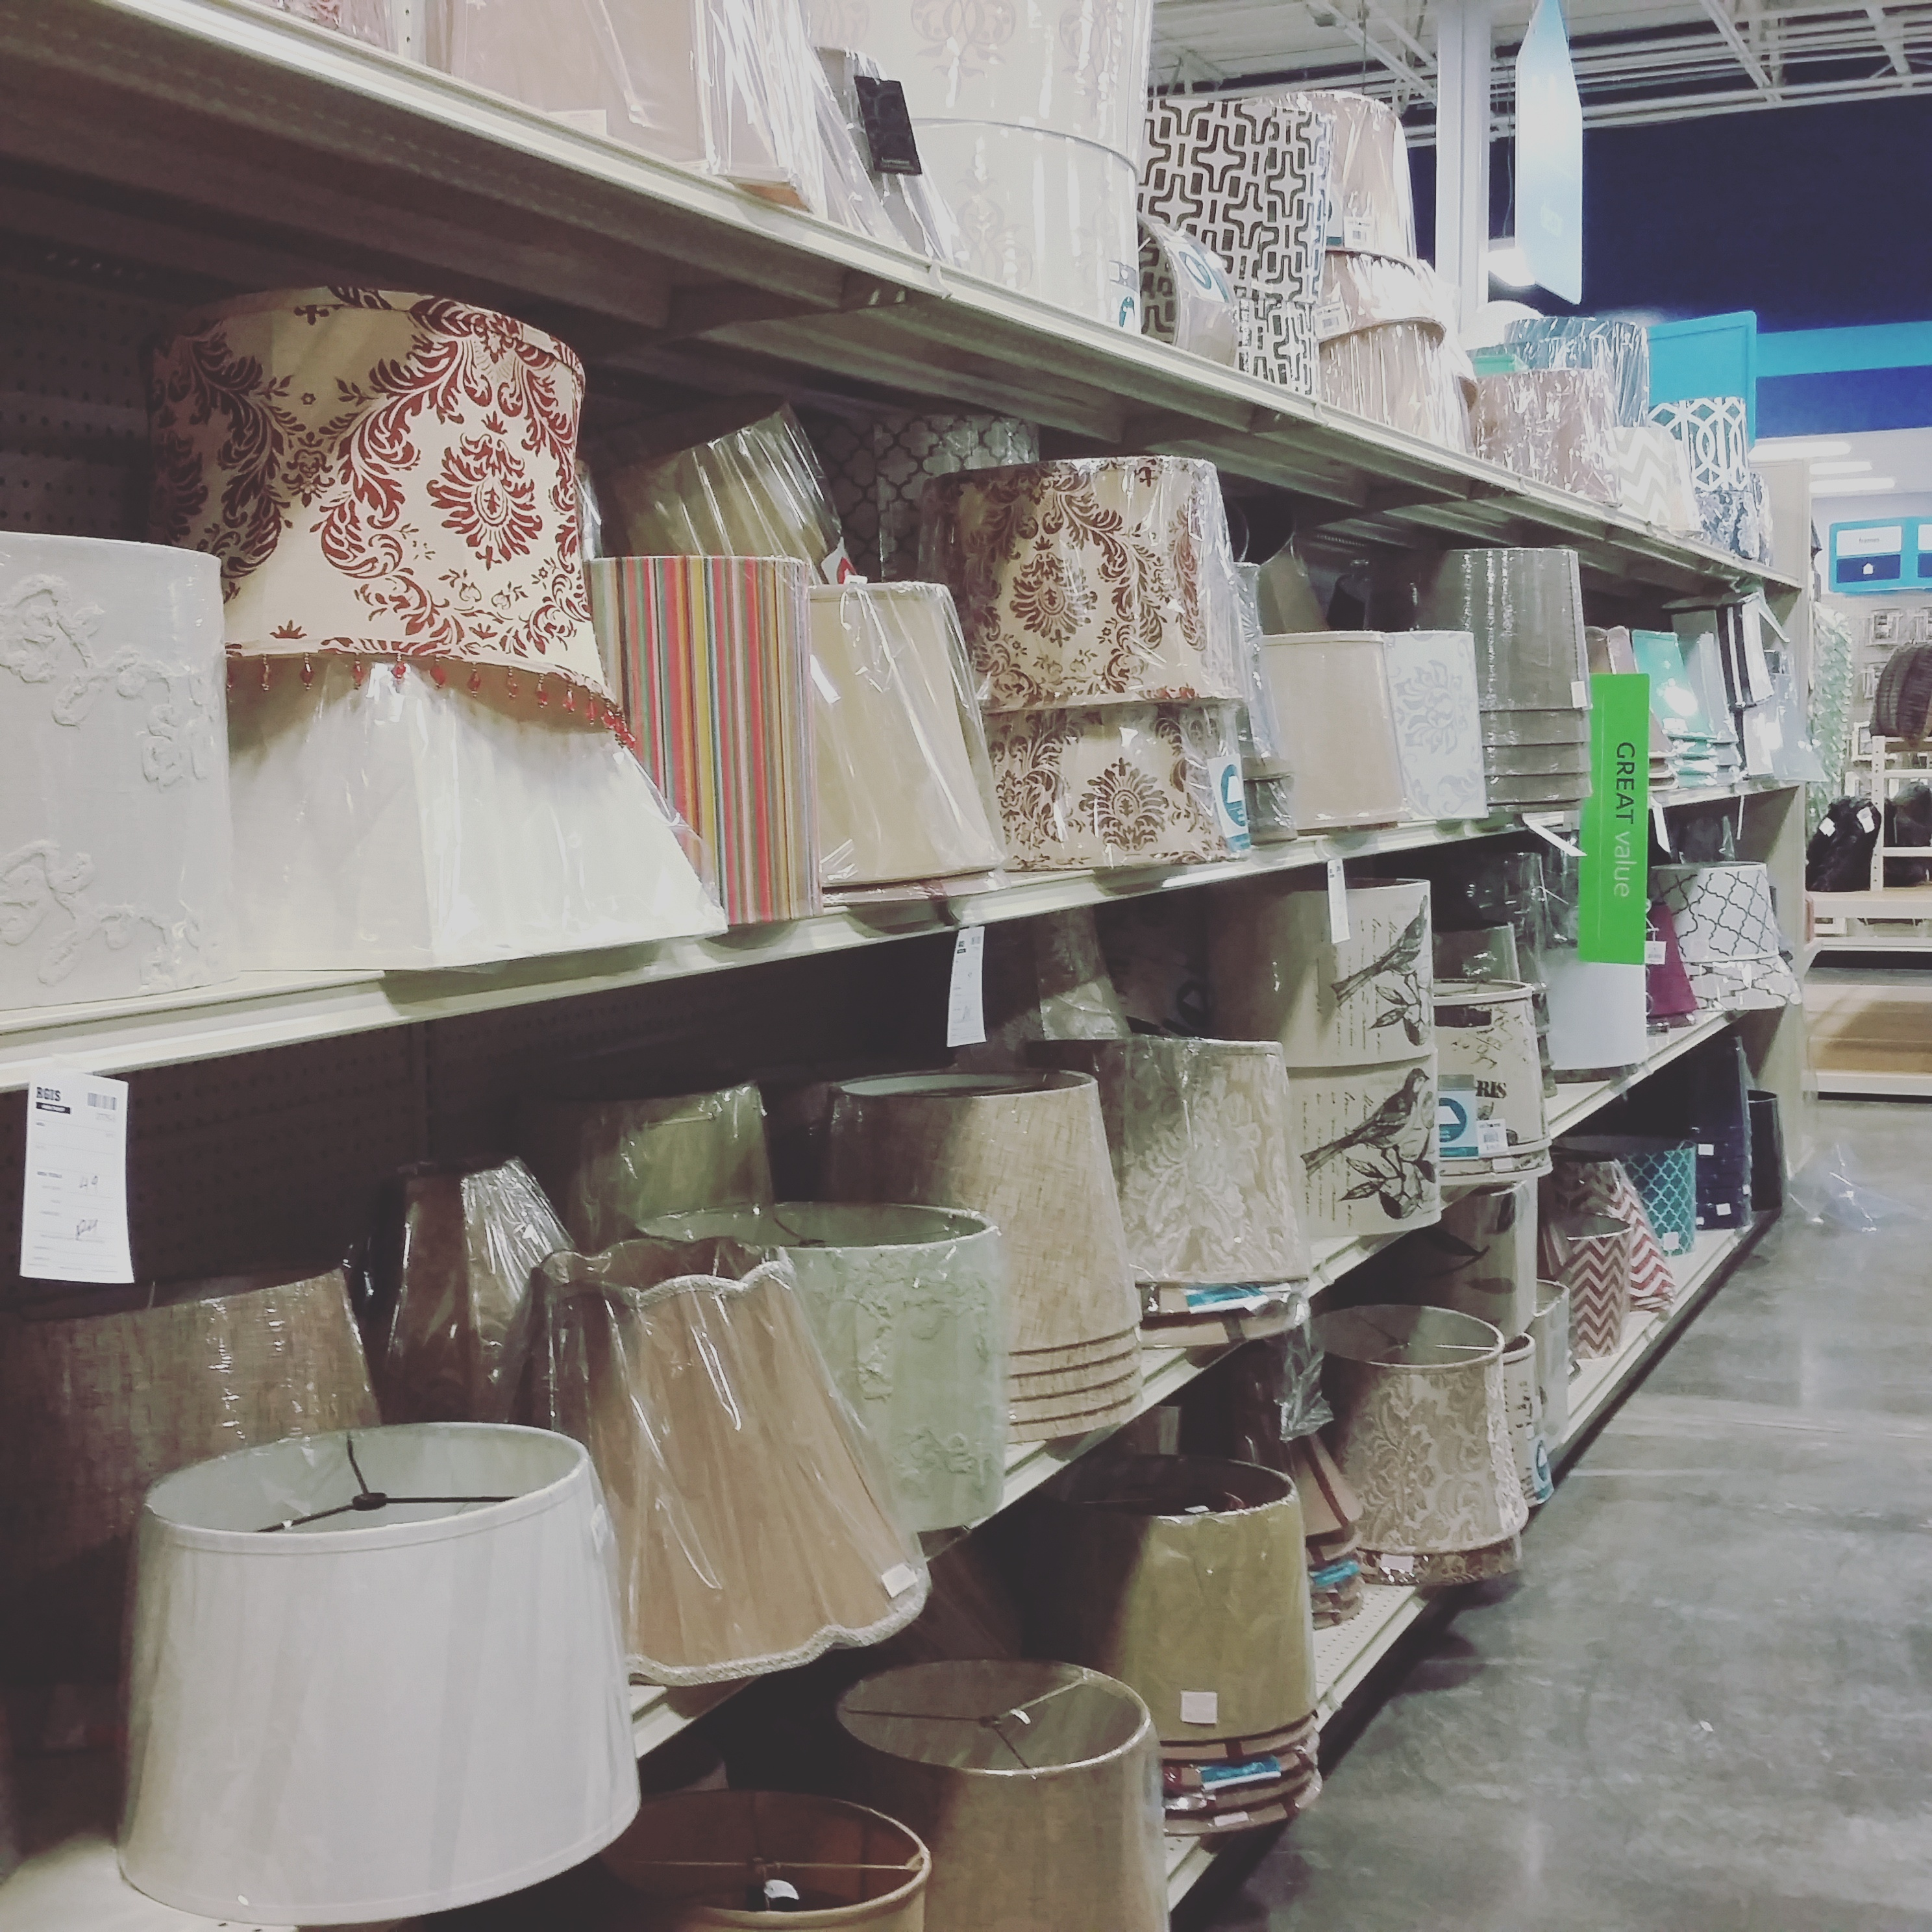 Home Decor Superstore if you happen to live in or near prescott az come check out our new at home the home decor superstore if not they have these stores in different areas Rows Upon Rows Of Home Decor At At Home The Happy Home Therapist